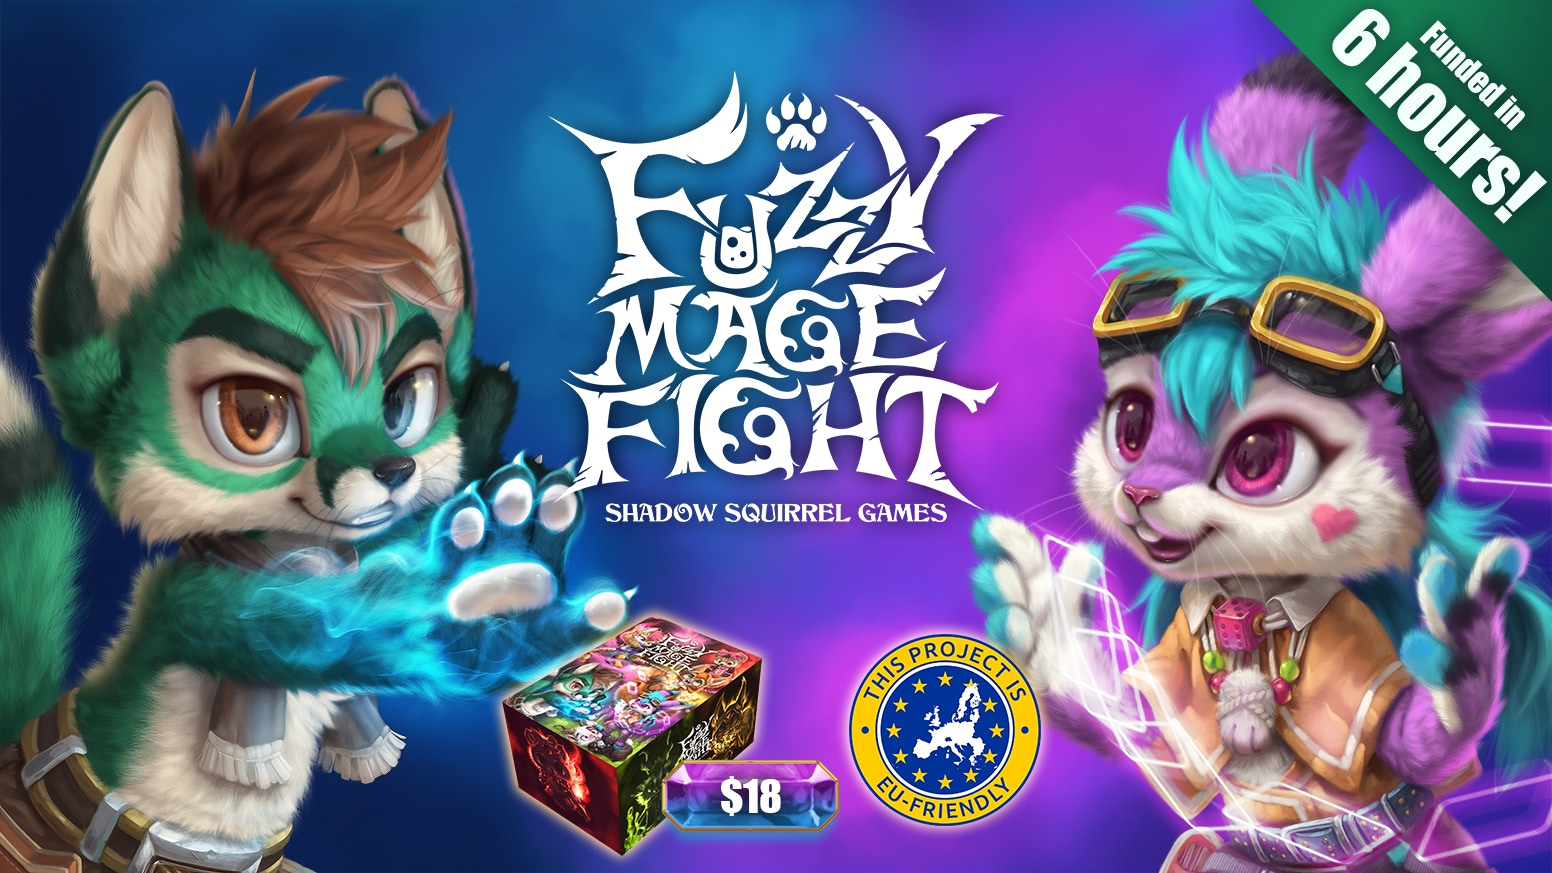 A card game for 2-6 players. Play as fuzzy mages with unique abilities fighting to become the most magical fuzzy mage ever!